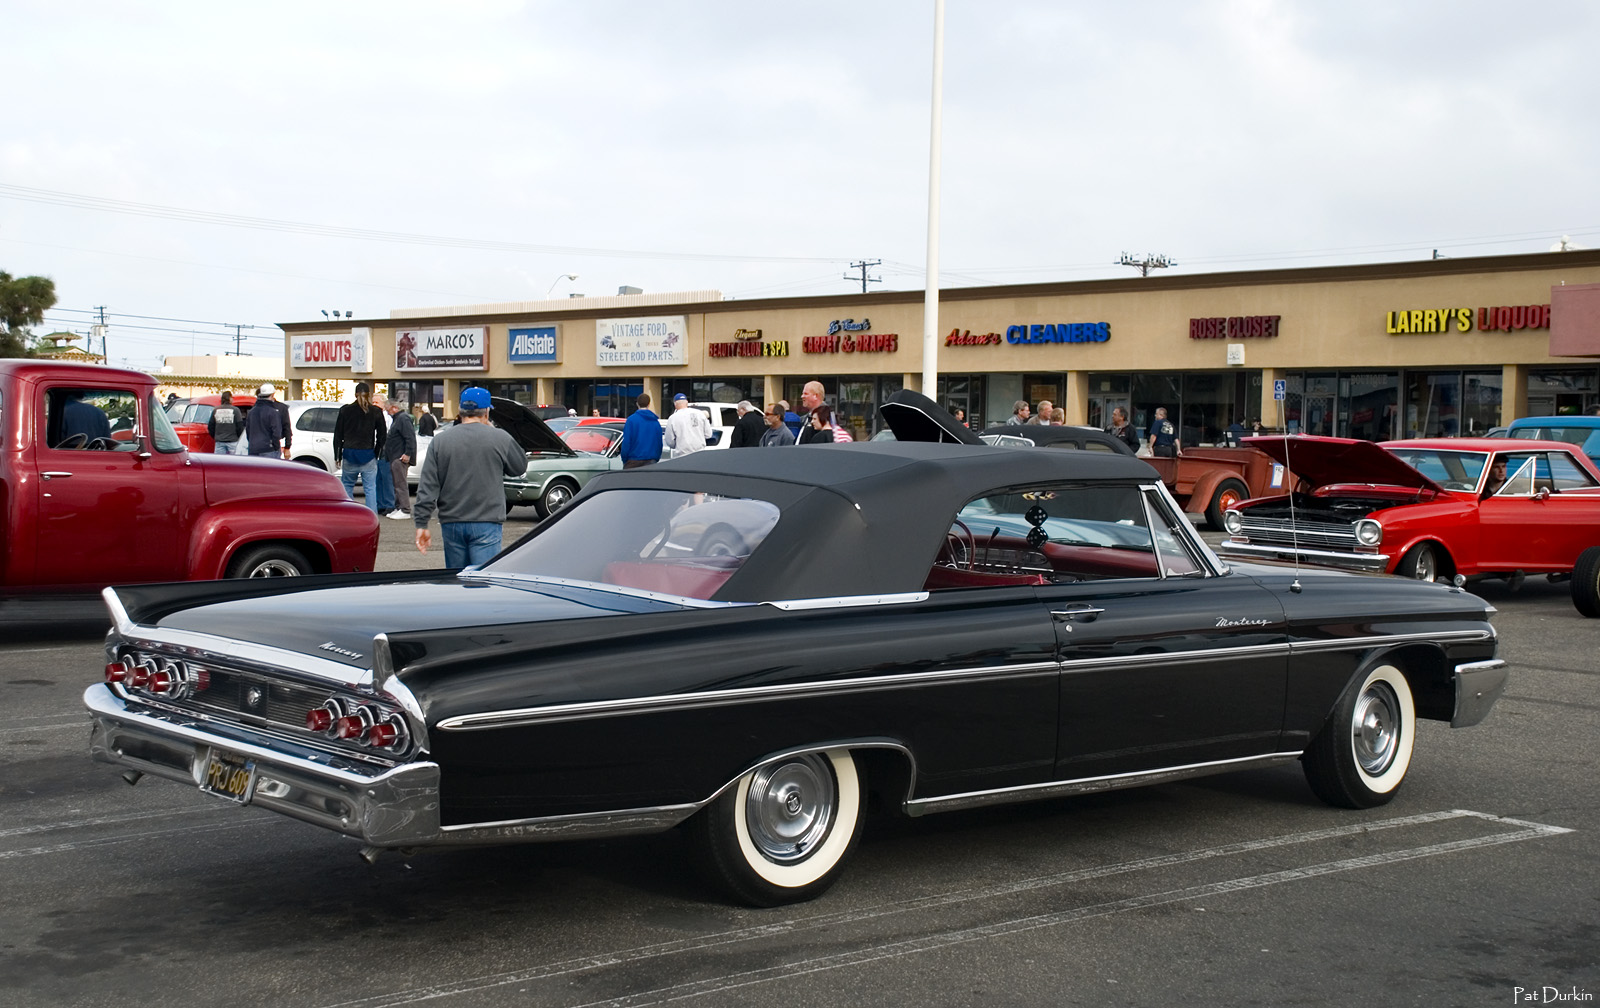 1961 Mercury u2013 The BETTER Low-Price Cars : Mercury Automobile History u2013 Super Marauder